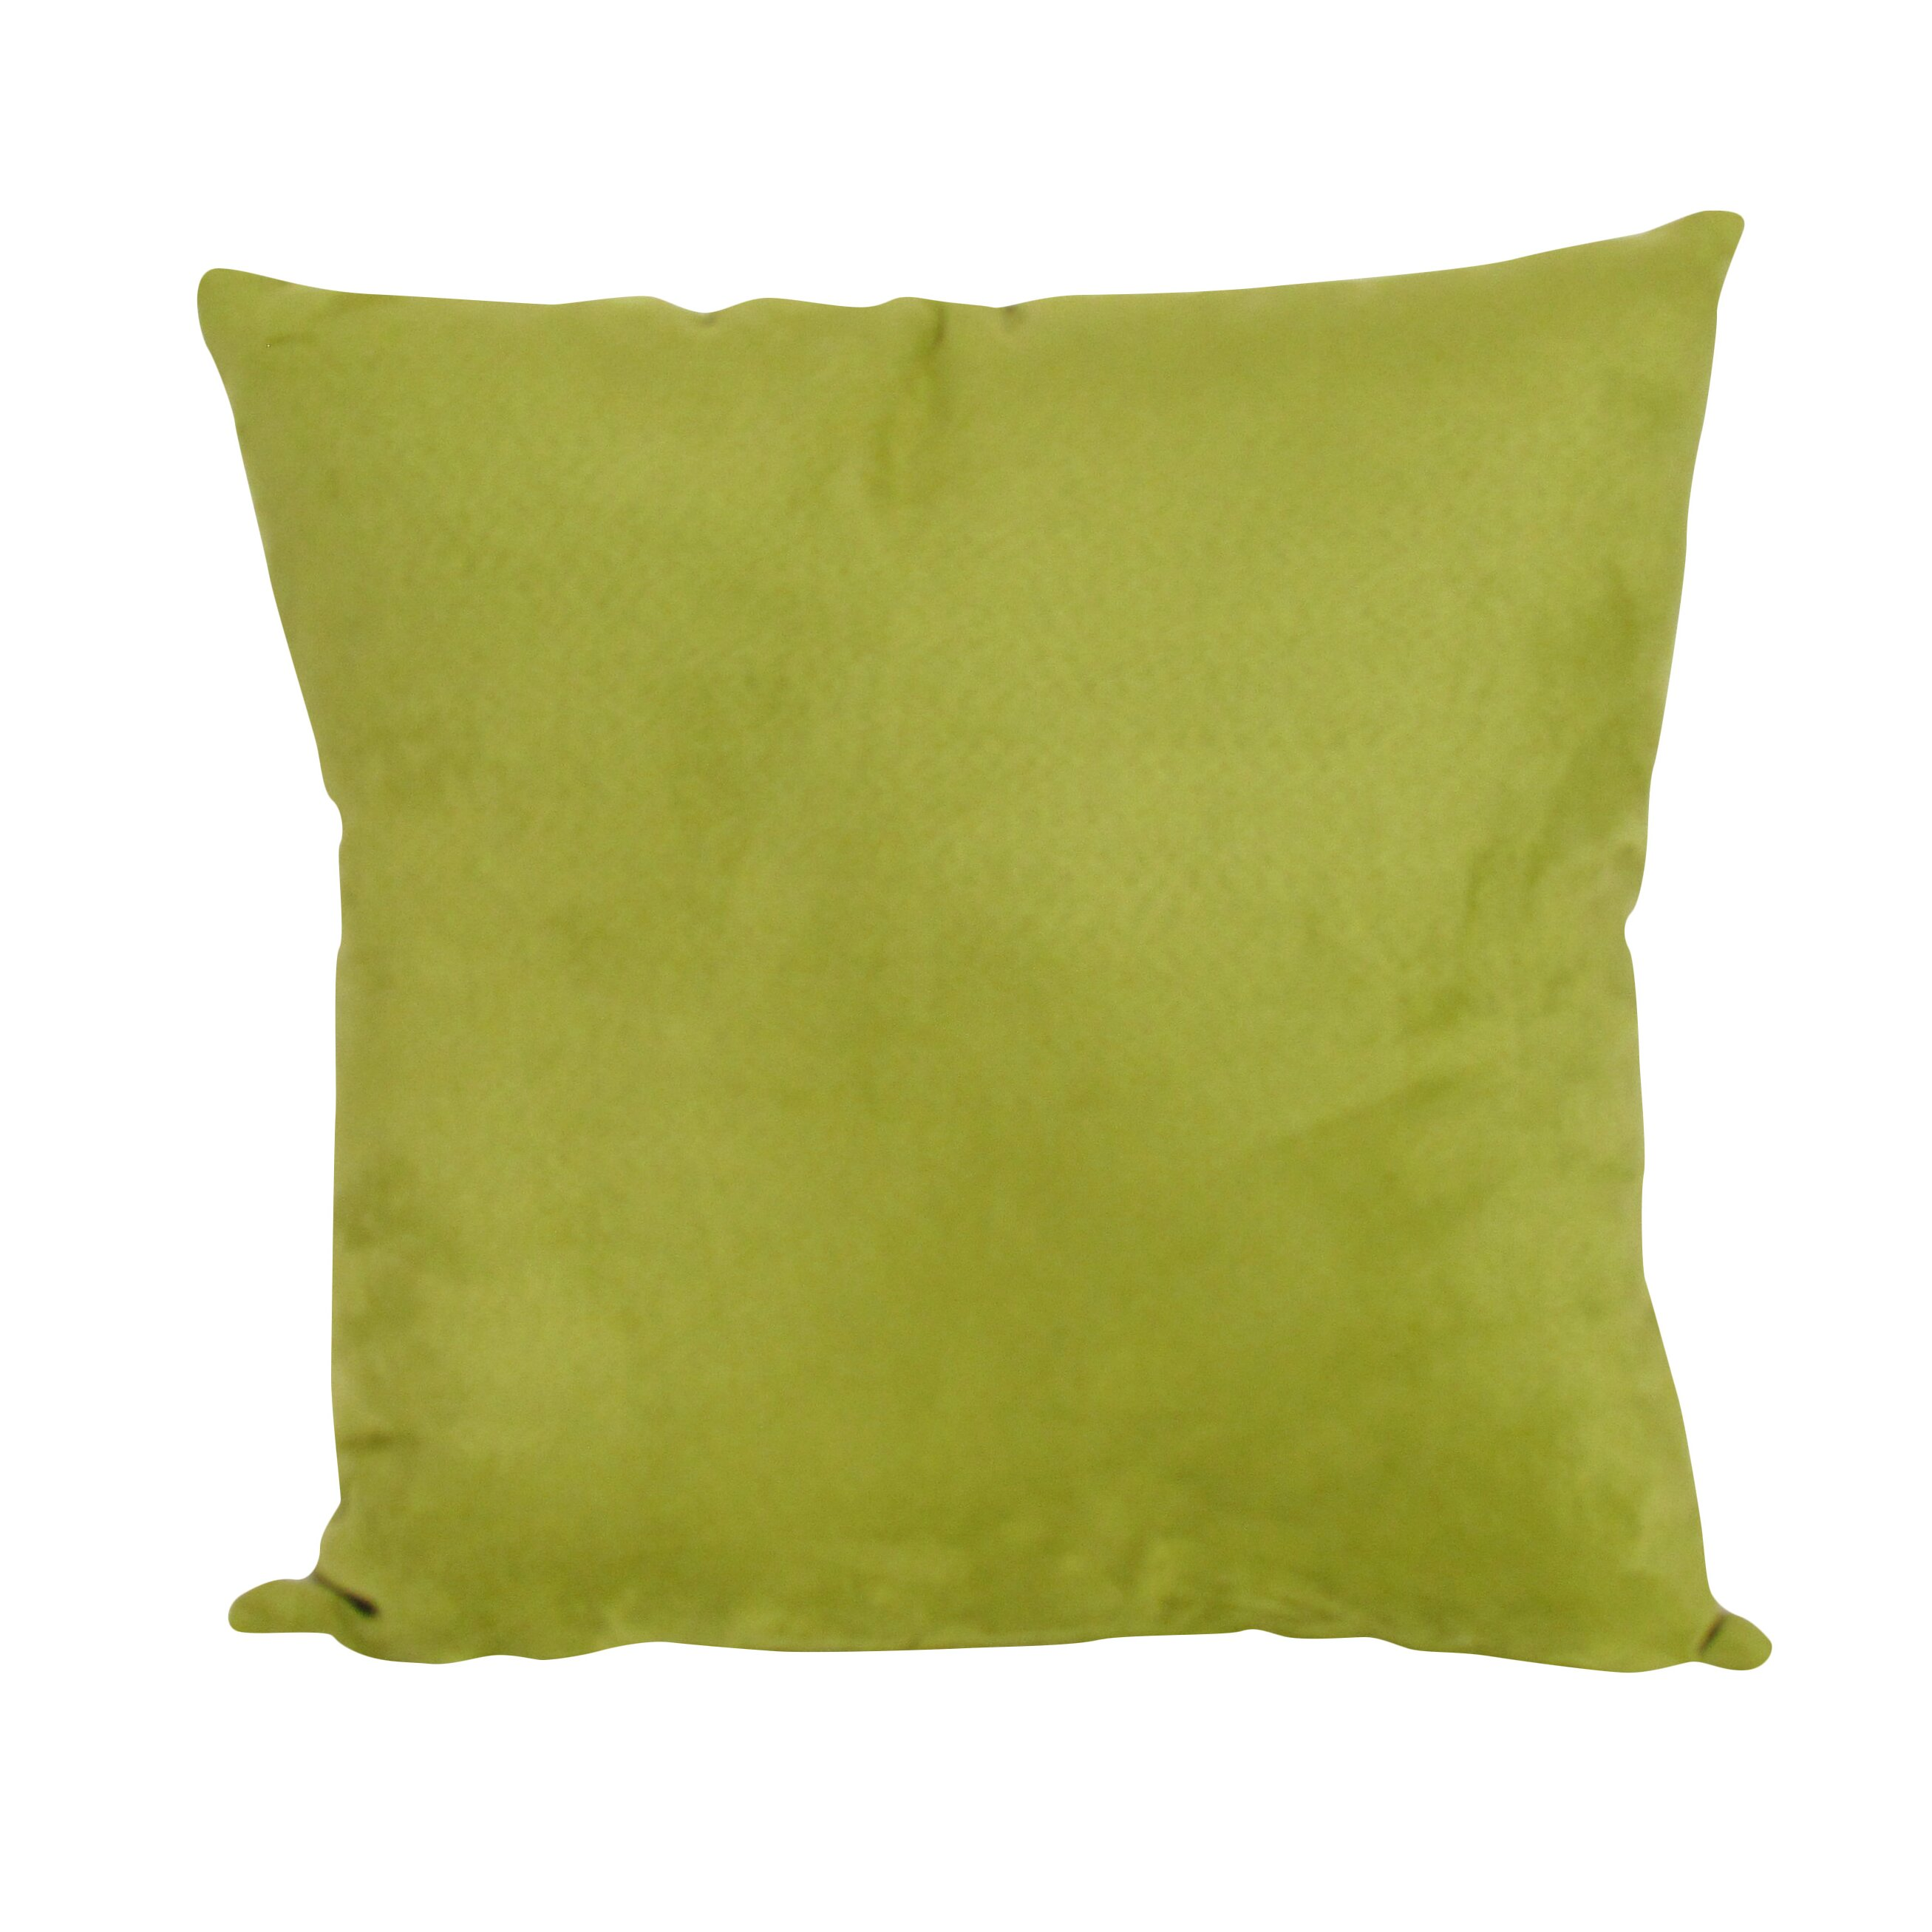 Decorative Pillow Wayfair : Wayborn Decorative Throw Pillow I Wayfair